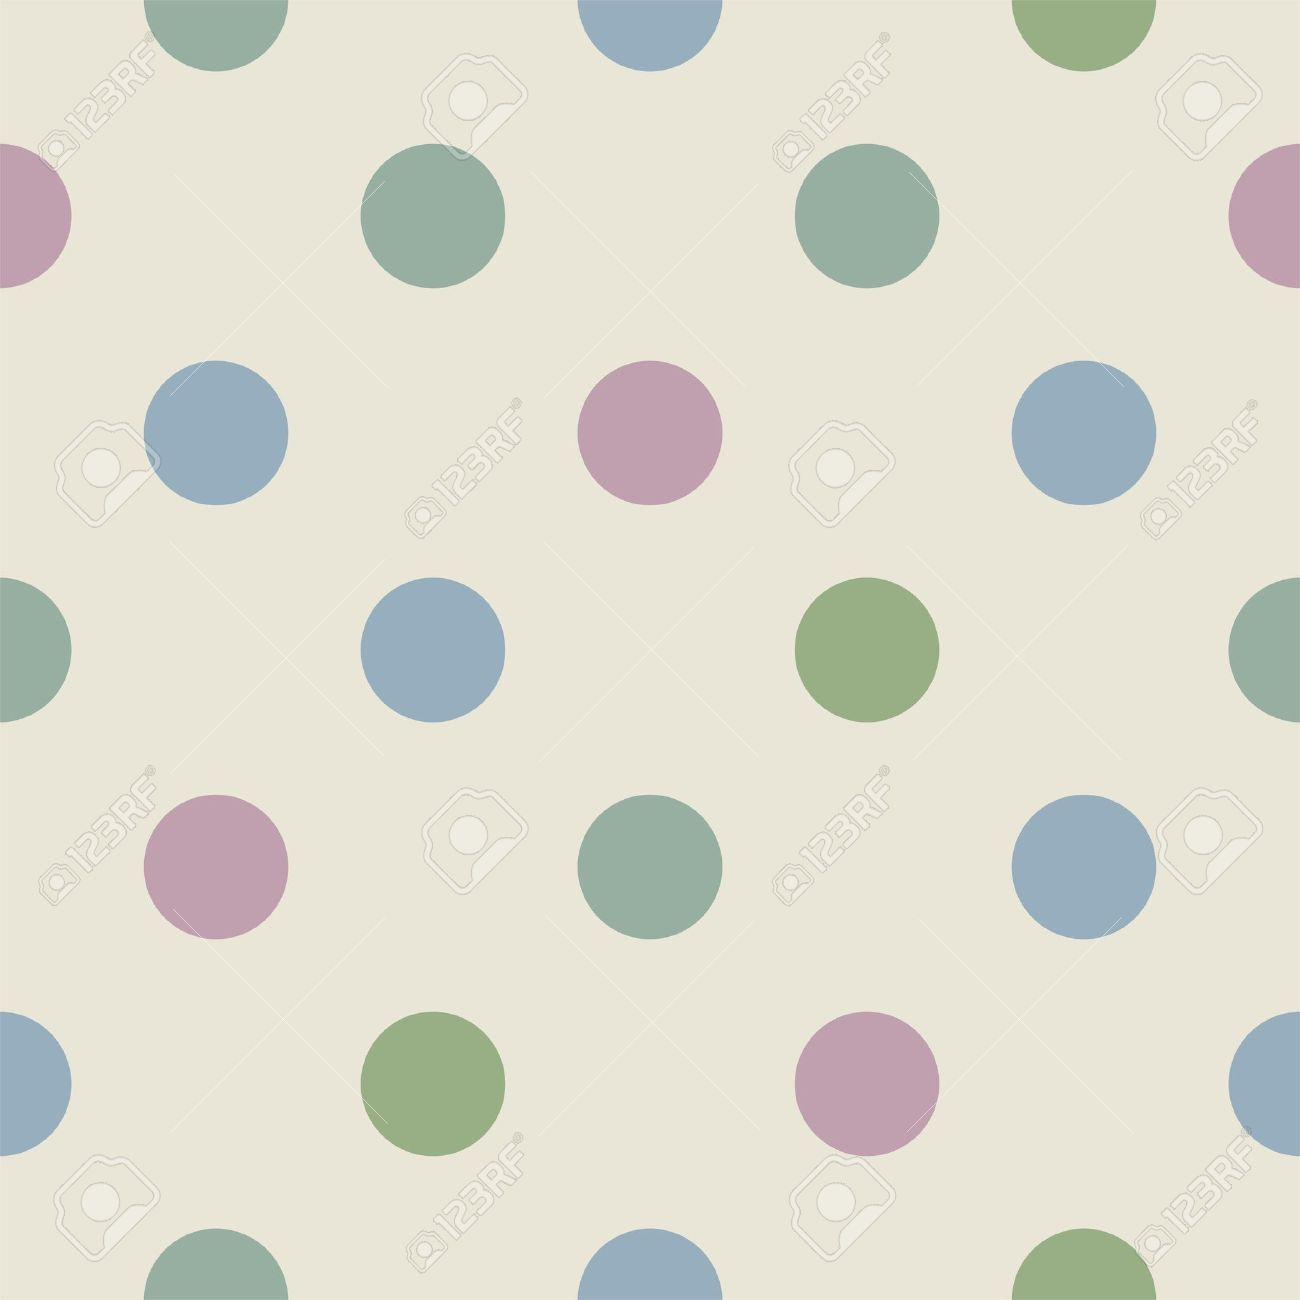 Great Wallpaper Halloween Pastel - 15595191-pastel-colorful-polka-dots-on-light-beige-neutral-background-retro-seamless-vector-pattern-for-backg  2018_169321.jpg